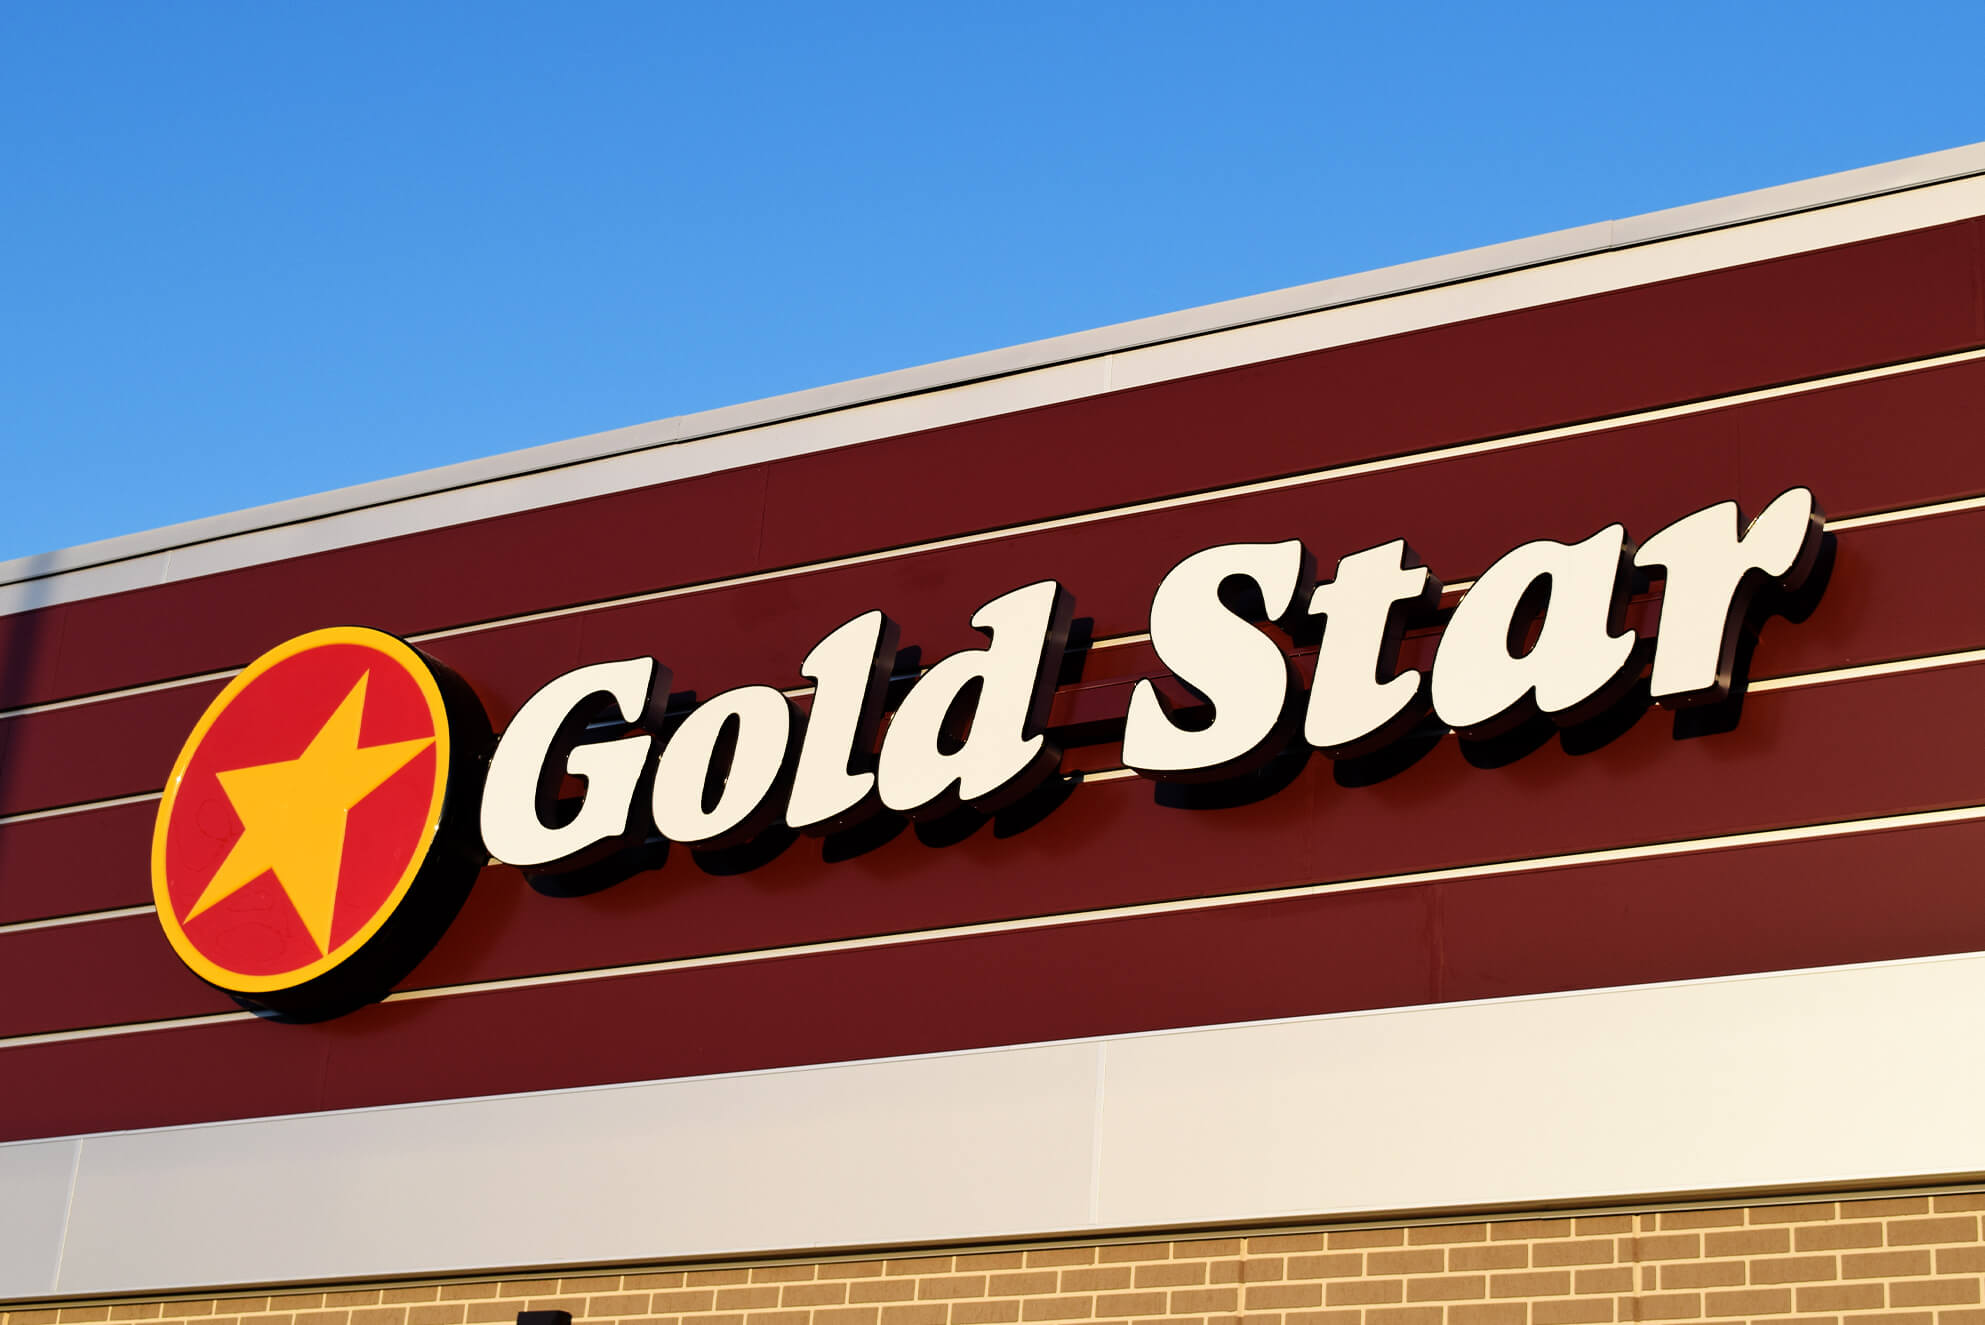 New channel letters for one of many new Gold Star locations.